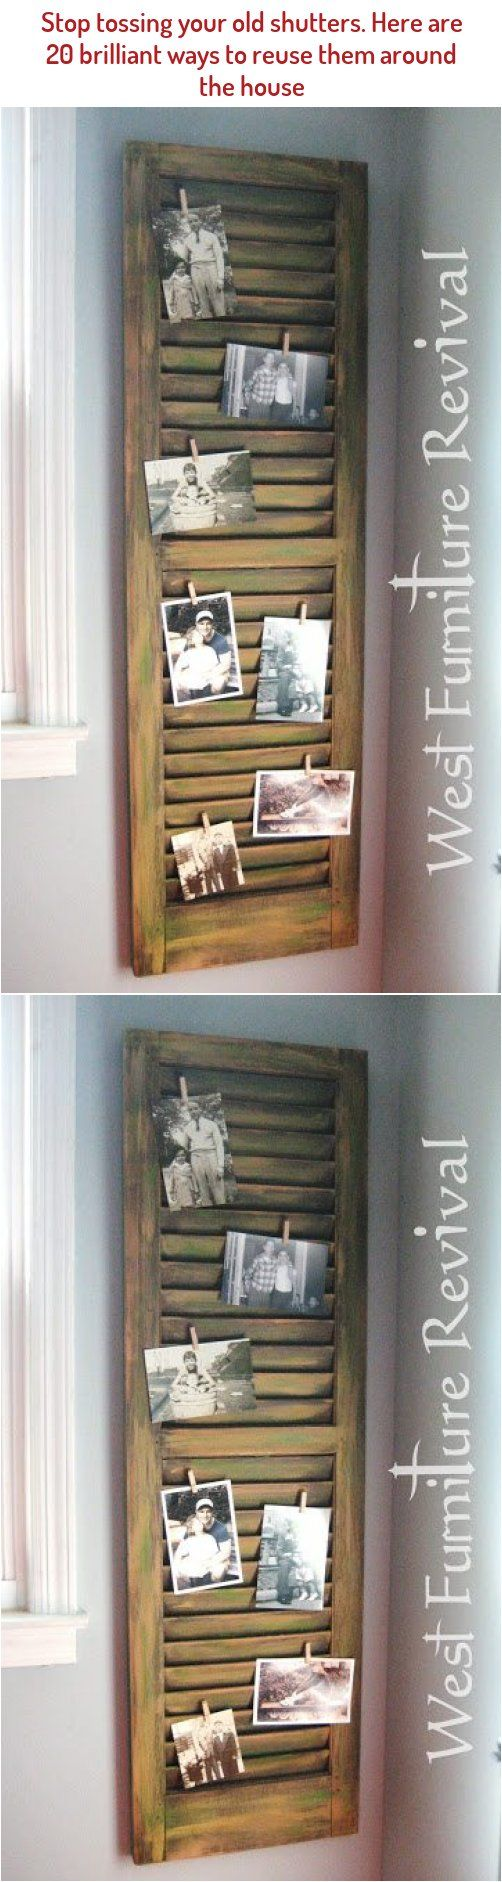 Here Are Some Creative Old Shutter Home Decoration Ideas In 2020 Old Shutters Decor Repurposed Ladders